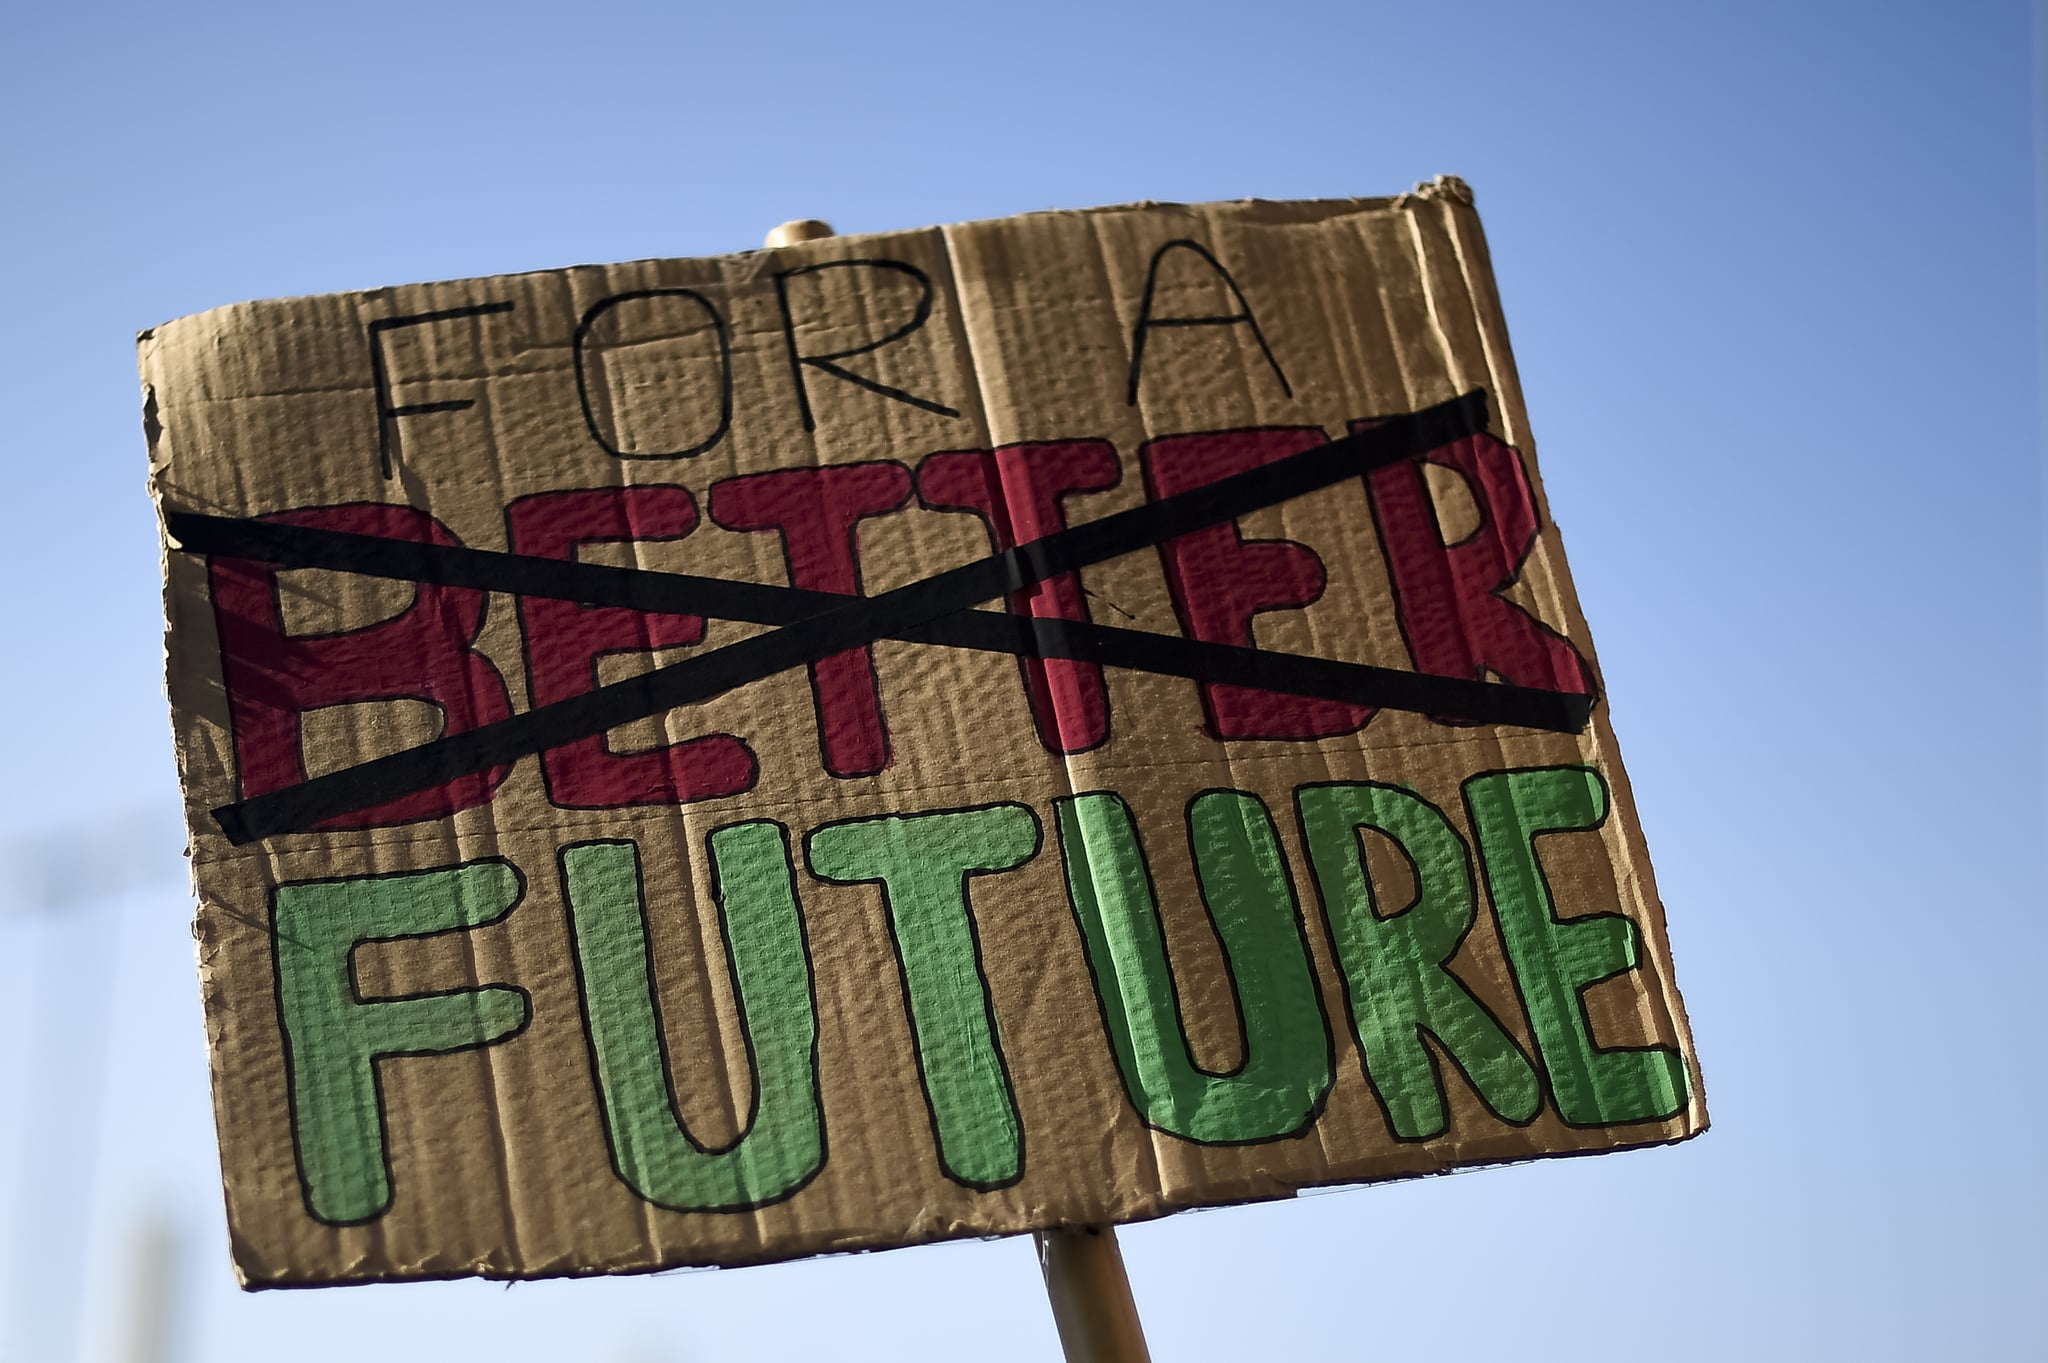 TURIN, ITALY - 2019/11/29: A placard reading 'For a better future' is seen during 'Fridays for future' demonstration, a worldwide climate strike against governmental inaction towards climate breakdown and environmental pollution. (Photo by Nicolò Campo/LightRocket via Getty Images)